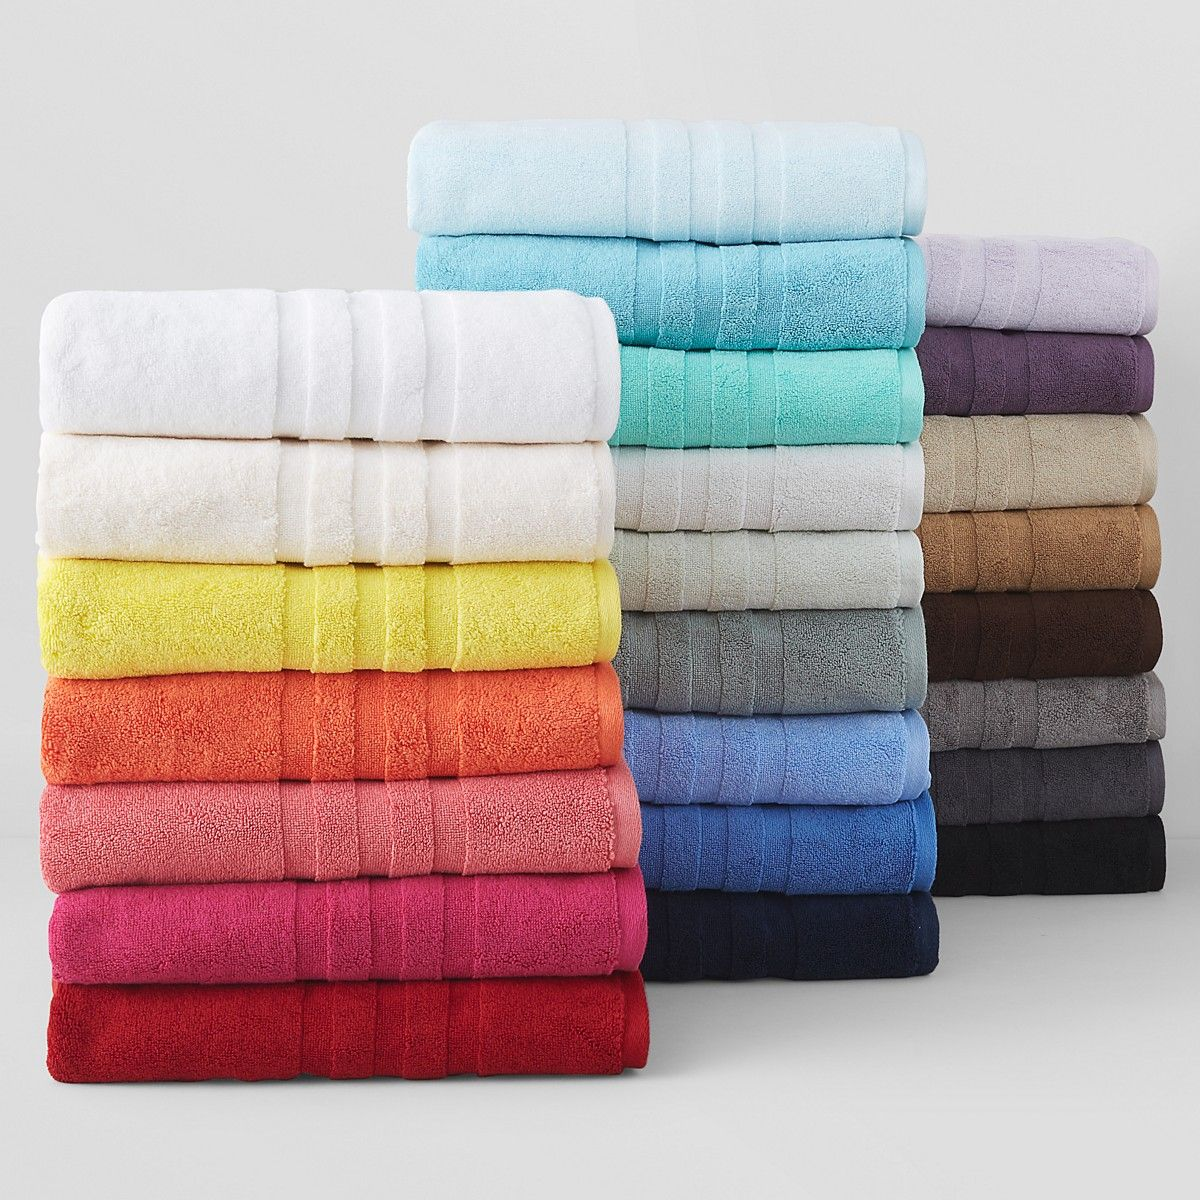 Ralph Lauren Bath Sheet Best Ralph Lauren Palmer Towels  Lk  Pinterest  Towels Bath And Bath Inspiration Design